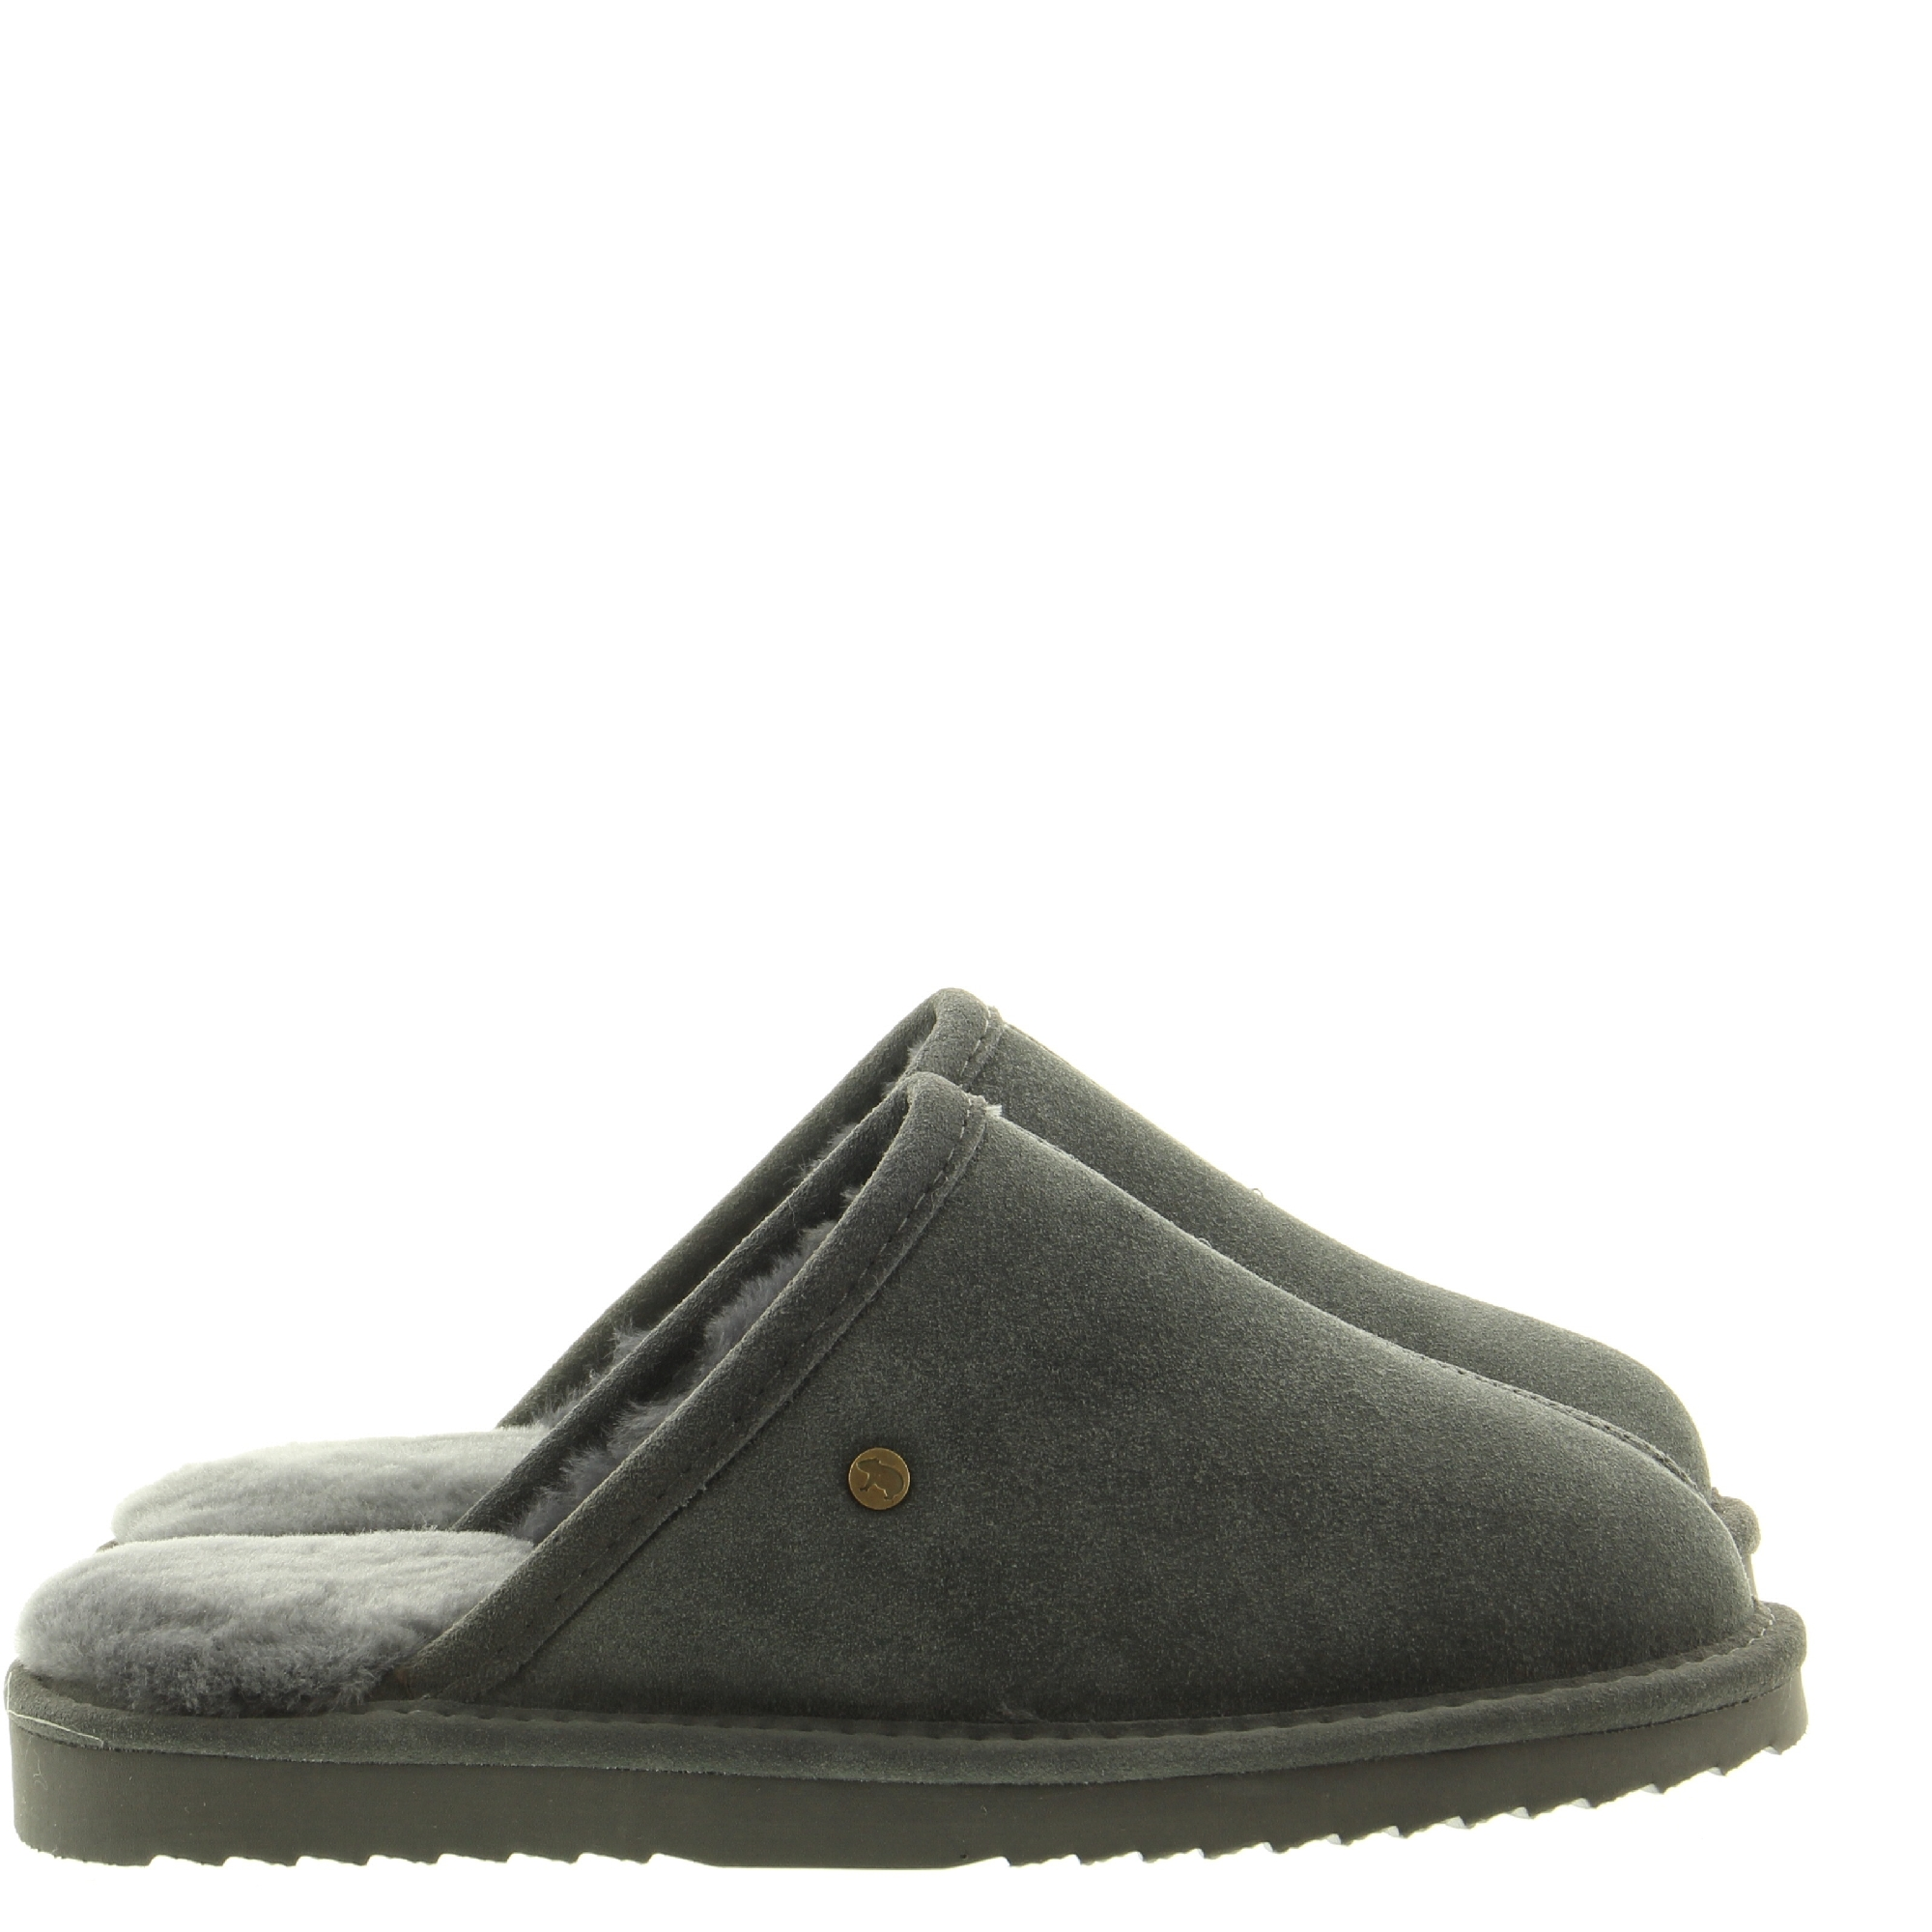 Warmbat Keith KTH4210 85 Dark grey